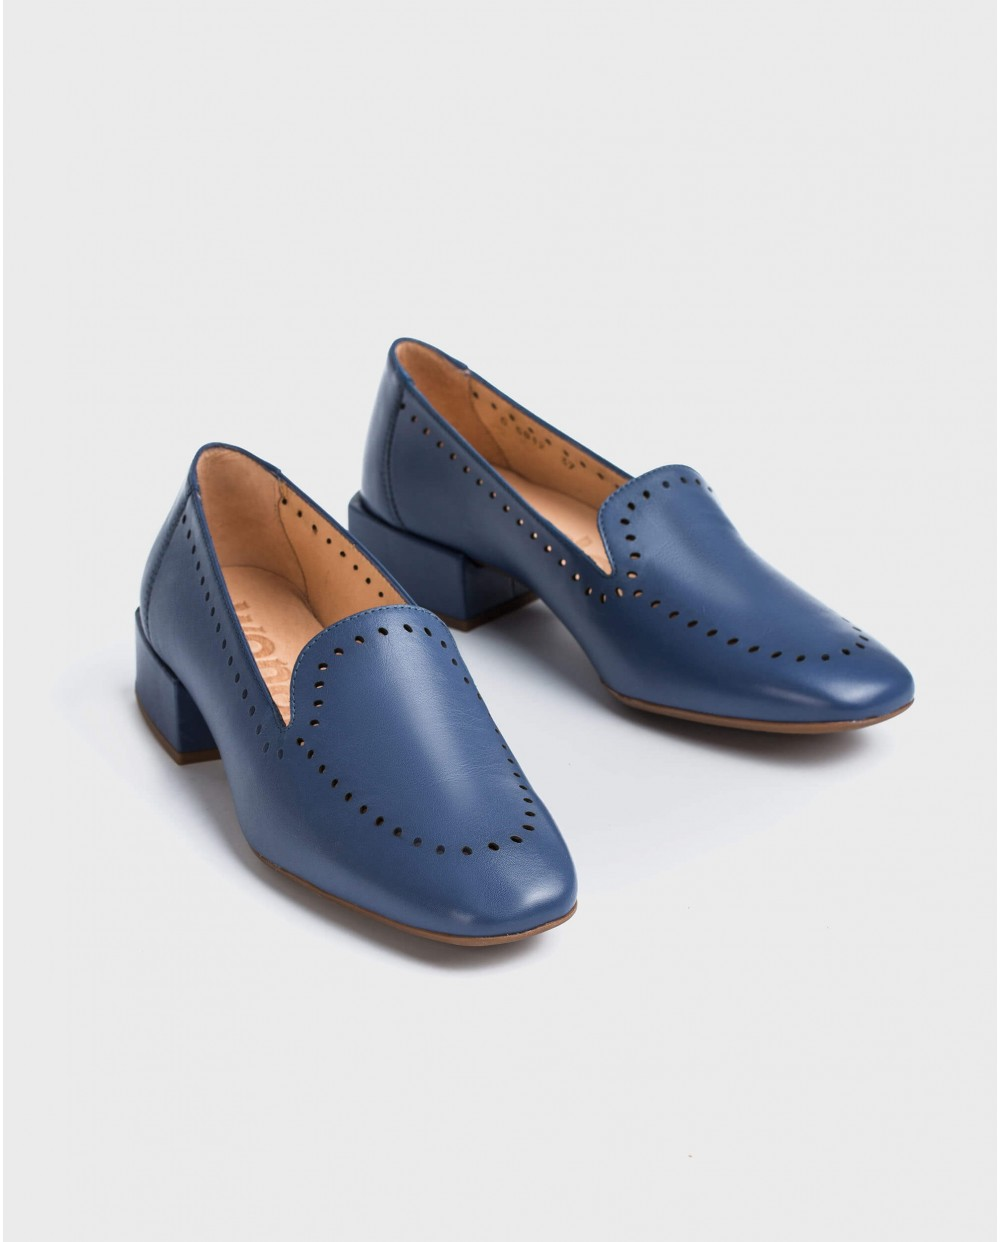 Wonders-Flat Shoes-Leather moccasin with brogue detail